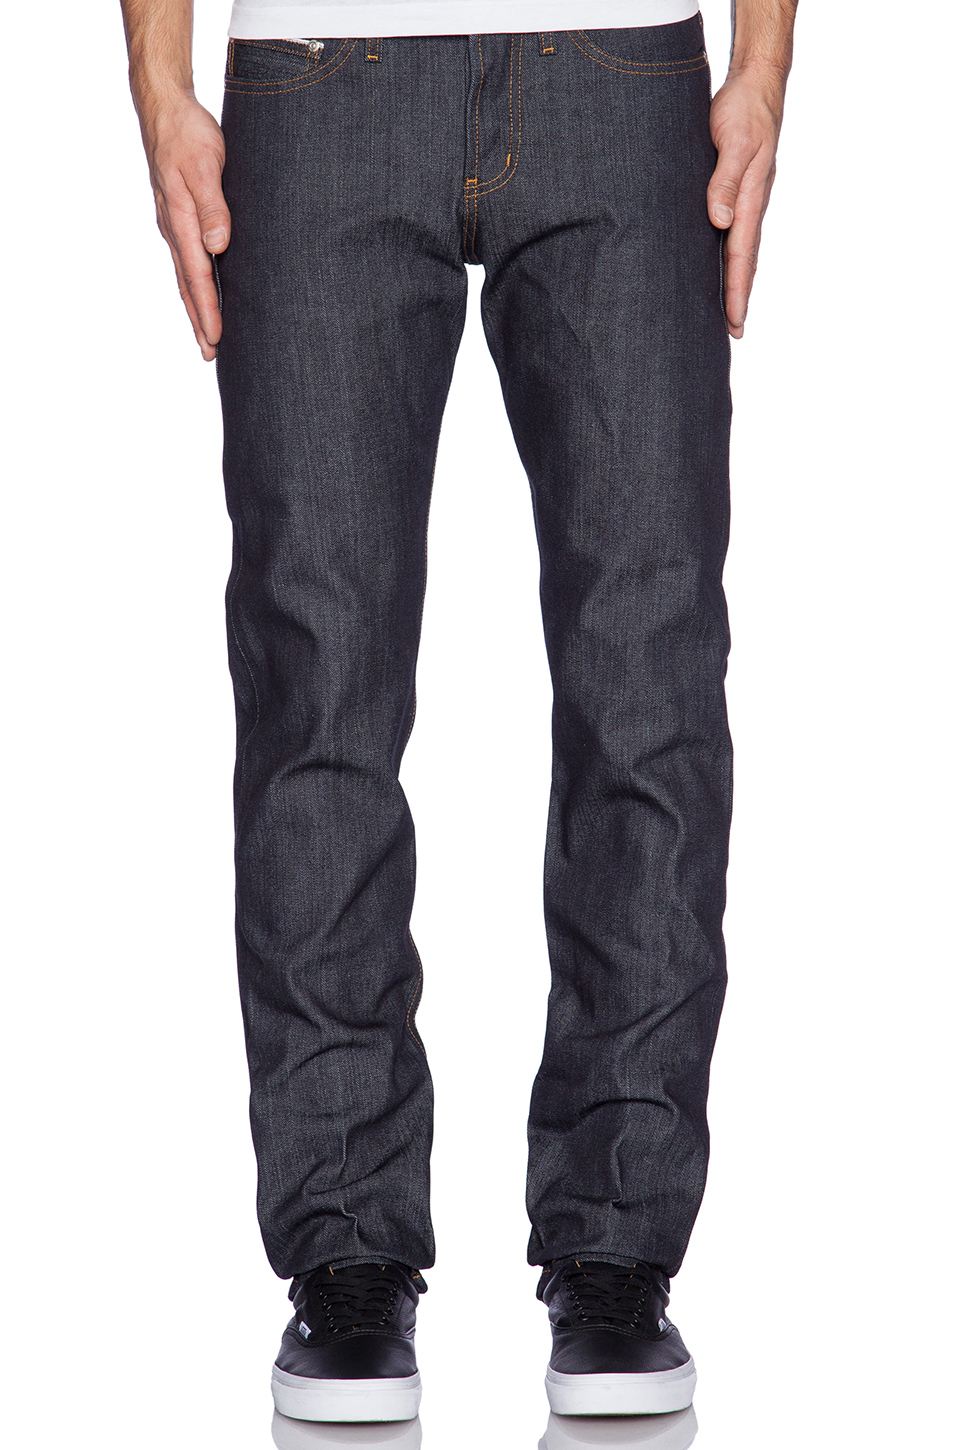 Naked & Famous Denim Lacivert Weird Guy Jean Pantolon